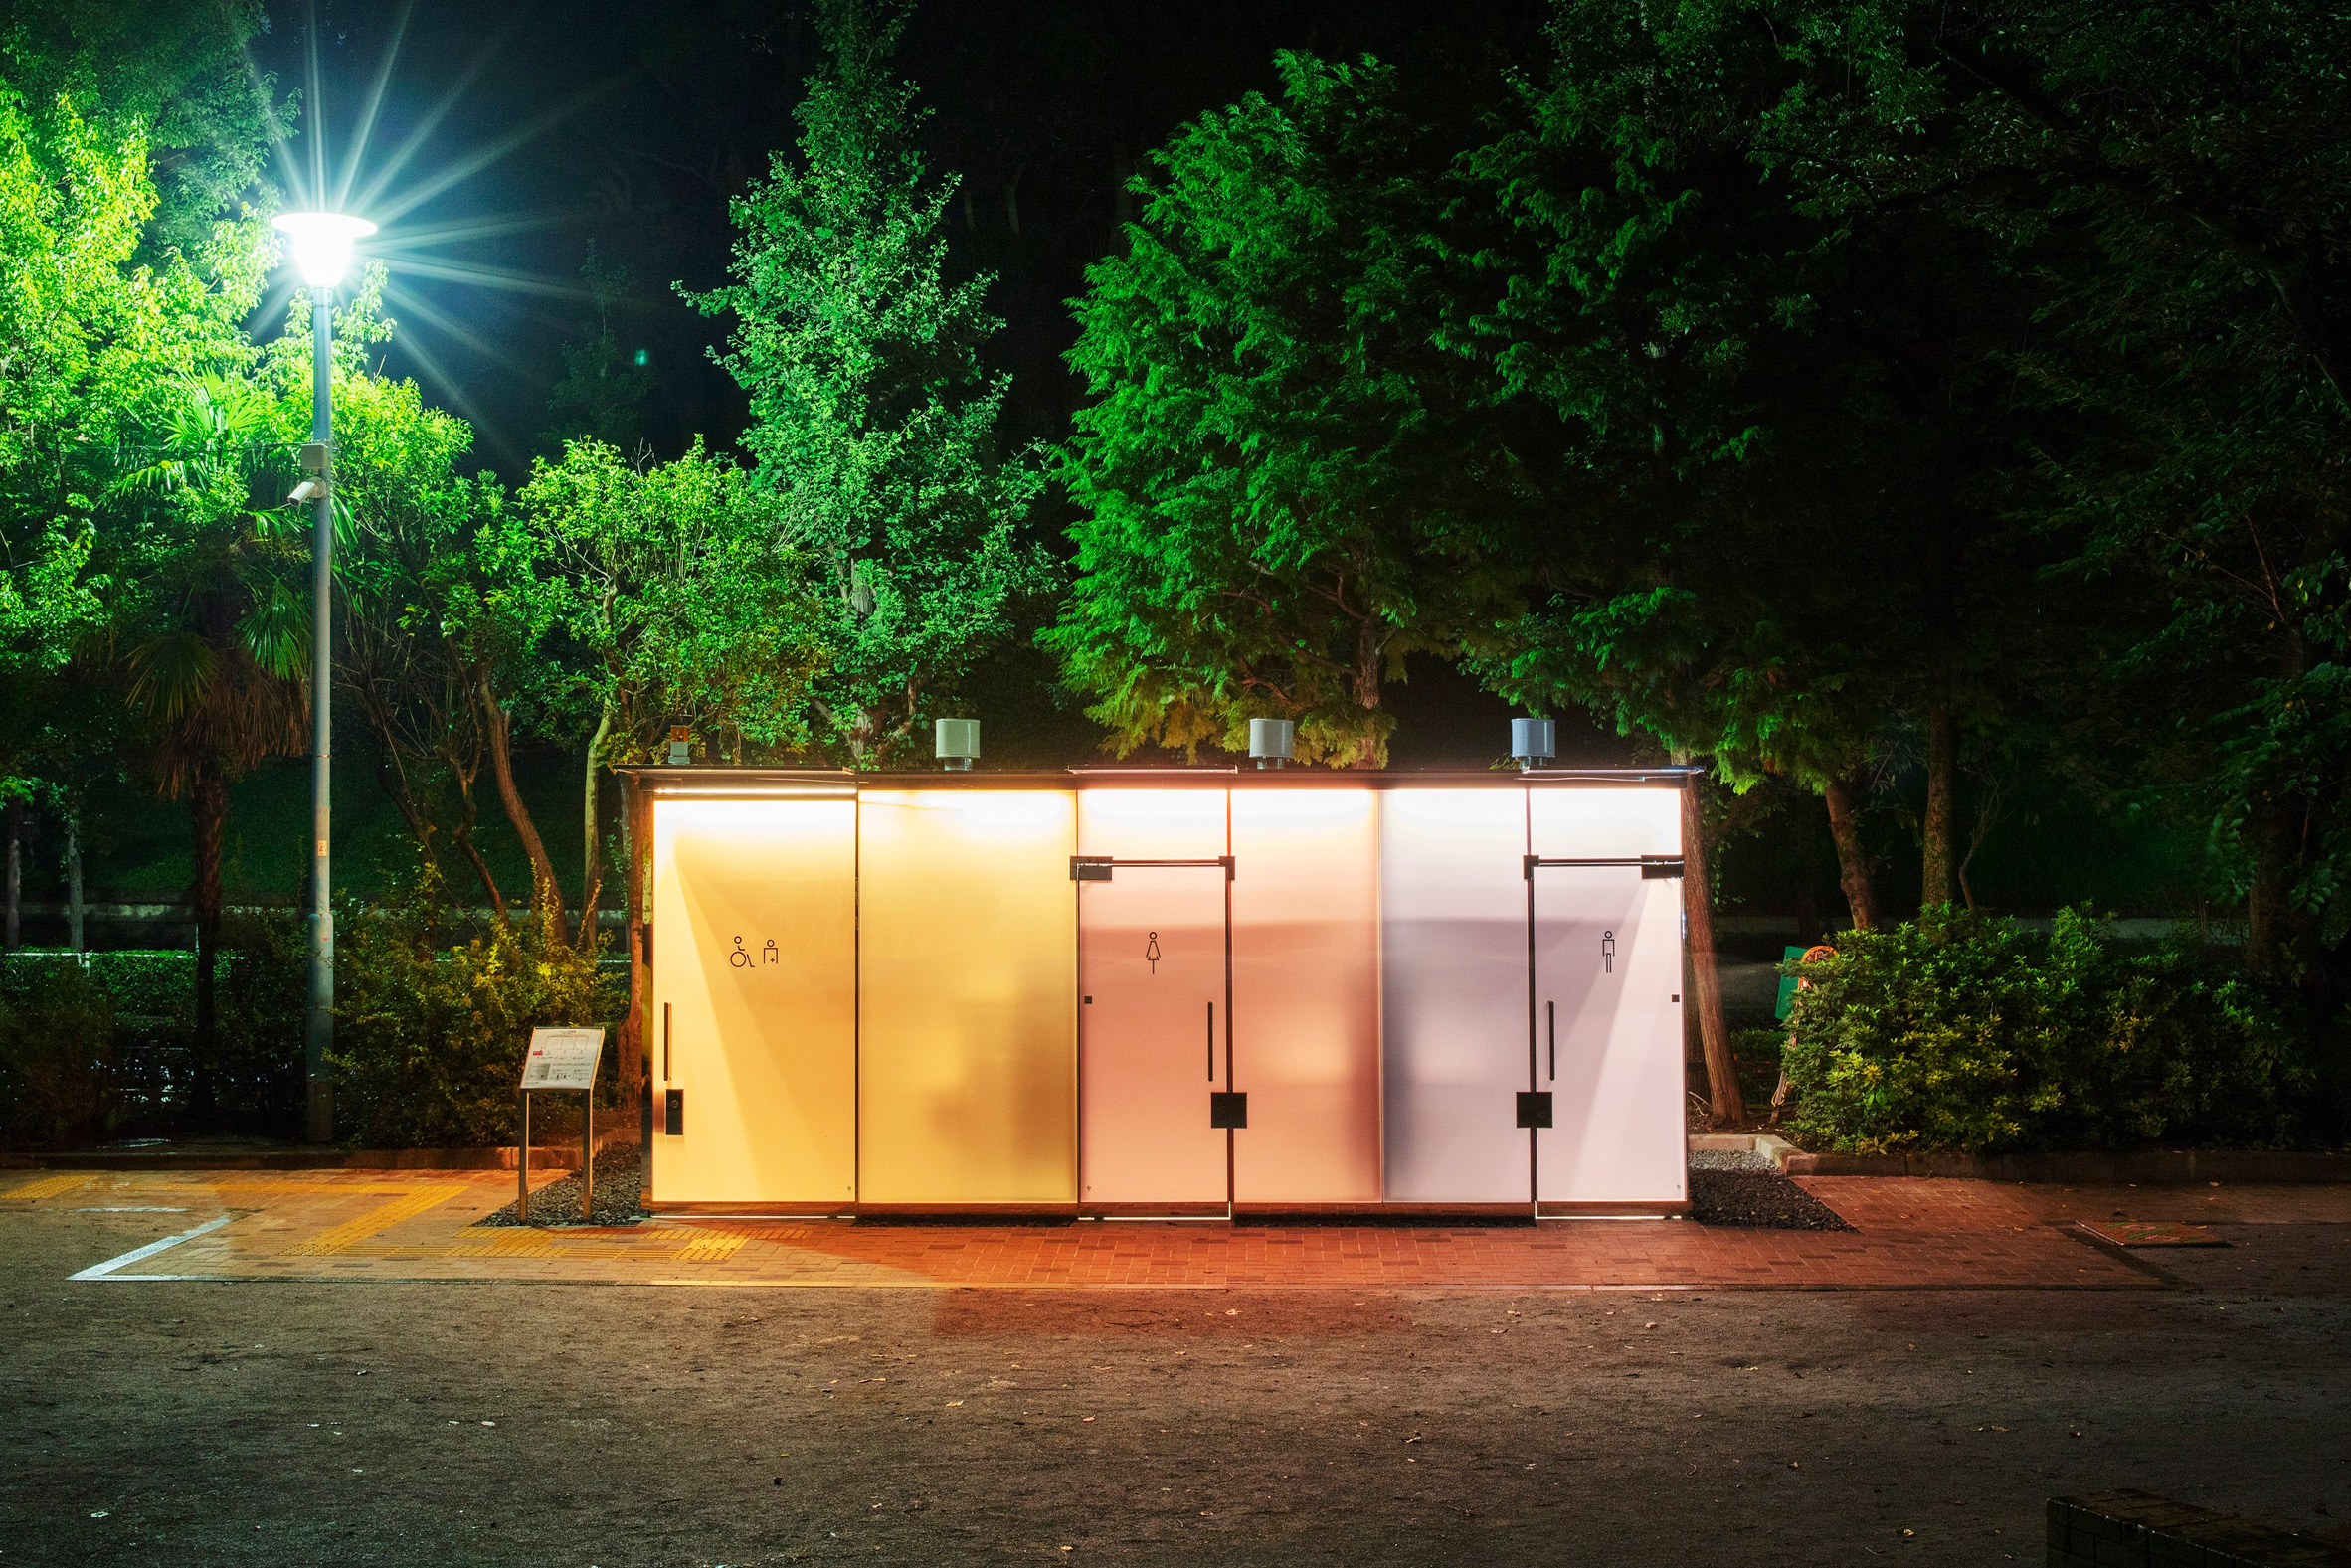 Public toilets in Tokyo's Yoyogi Fukamachi Mini Park and the Haru-No-Ogawa Community Park by Shigeru Ban for the Tokyo Toilet project